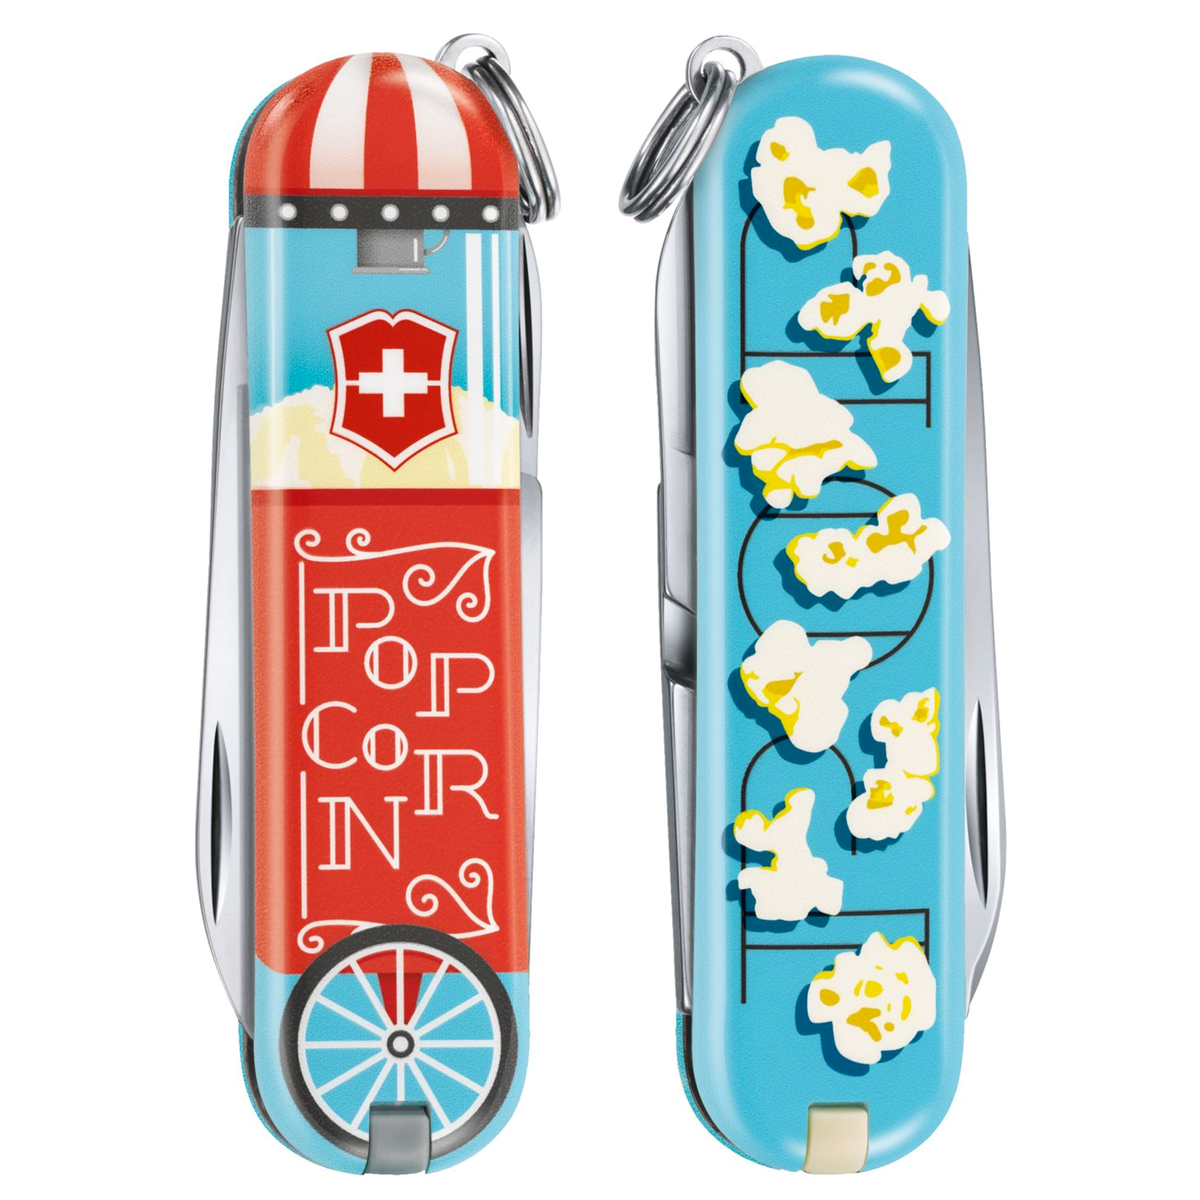 Victorinox - Small Swiss Army Knife - 2019 Let it Pop